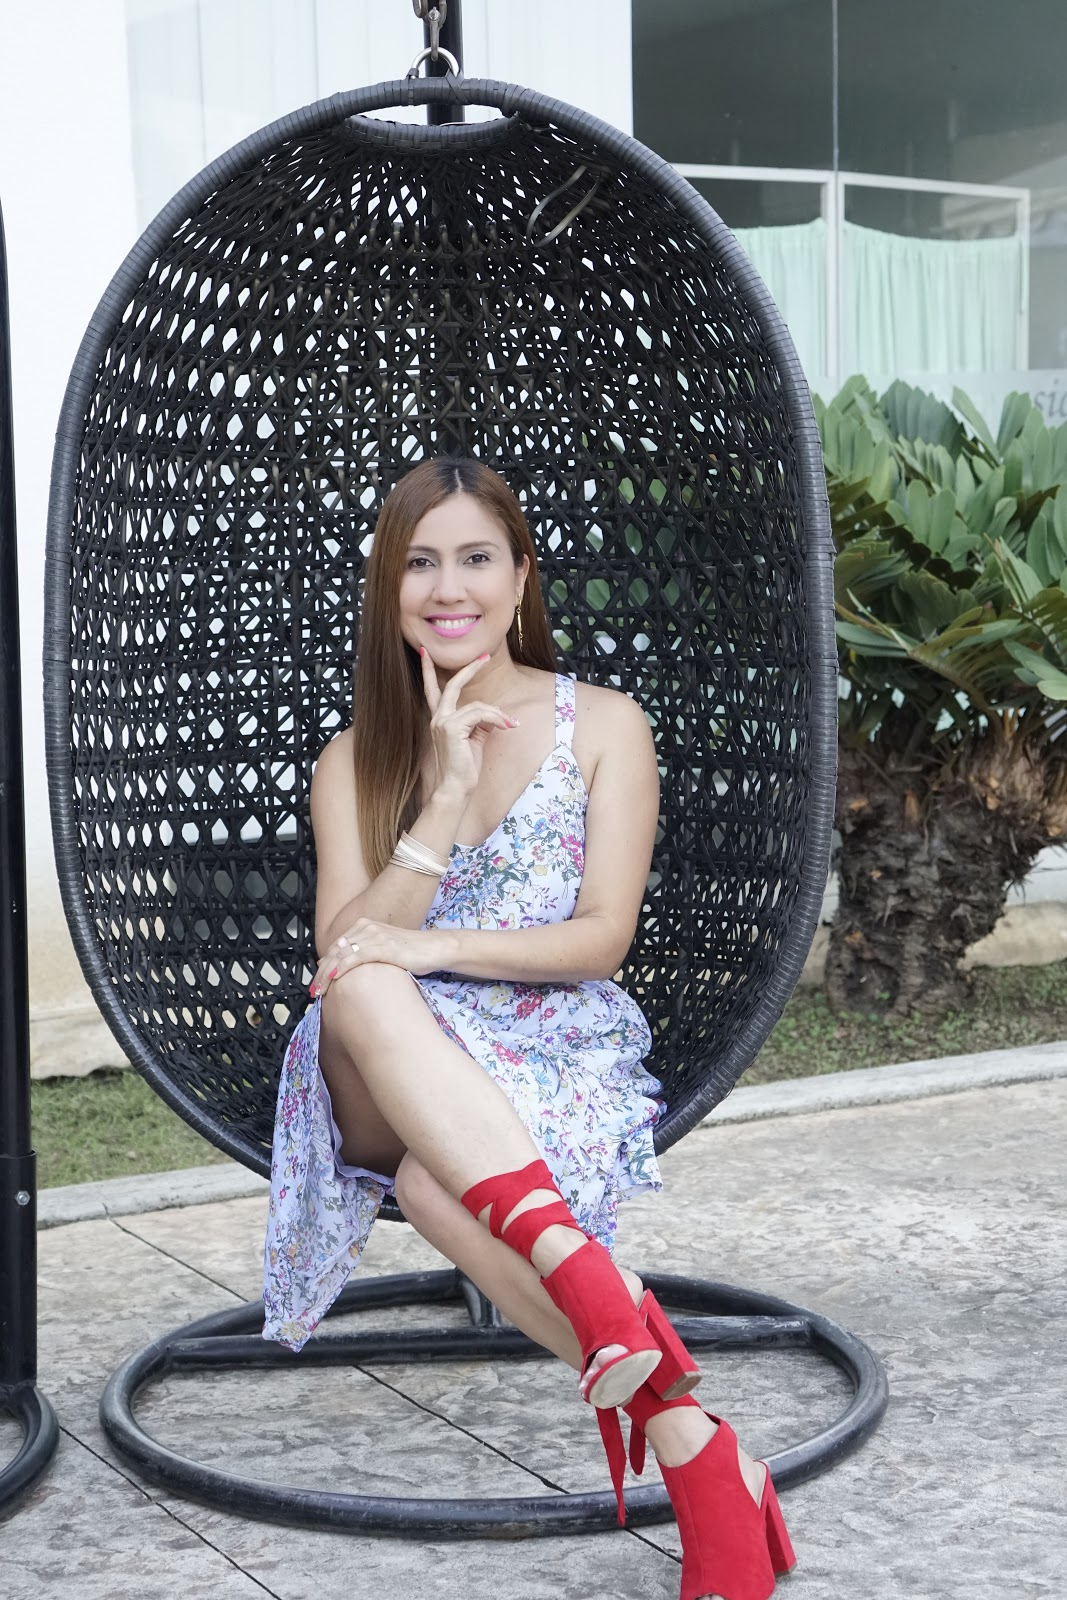 Venezuelan fashion designer Eugenia Molina, CEO in her own company. She designs bags made of leather.